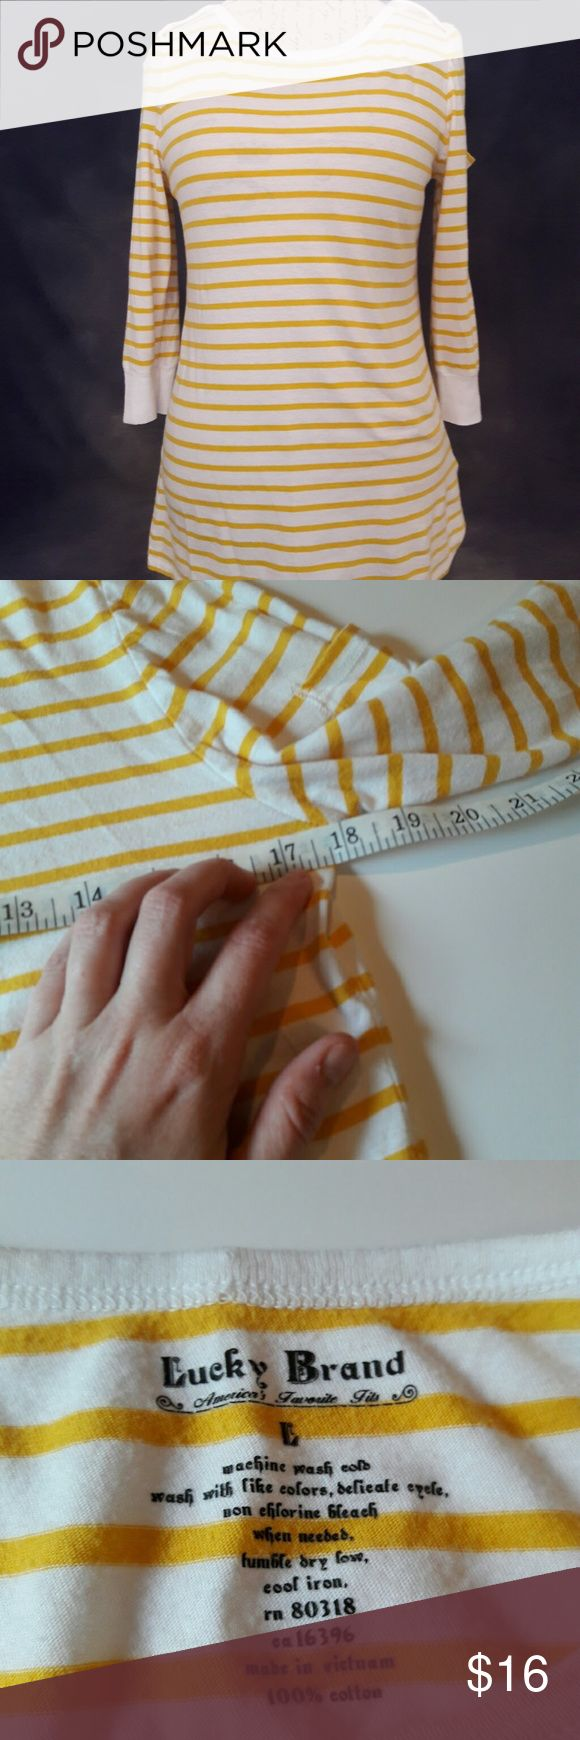 {Lucky Brand} striped shirt In perfect condition. Super cute yellow and white striped shirt. Has 3/4 length sleeves. Has a cute tiny pocket on one of the sleeves. Measurements provided in pics above. From a smoke and pet free home. Fast shipping! Bundle and save! Lucky Brand Tops Tees - Long Sleeve